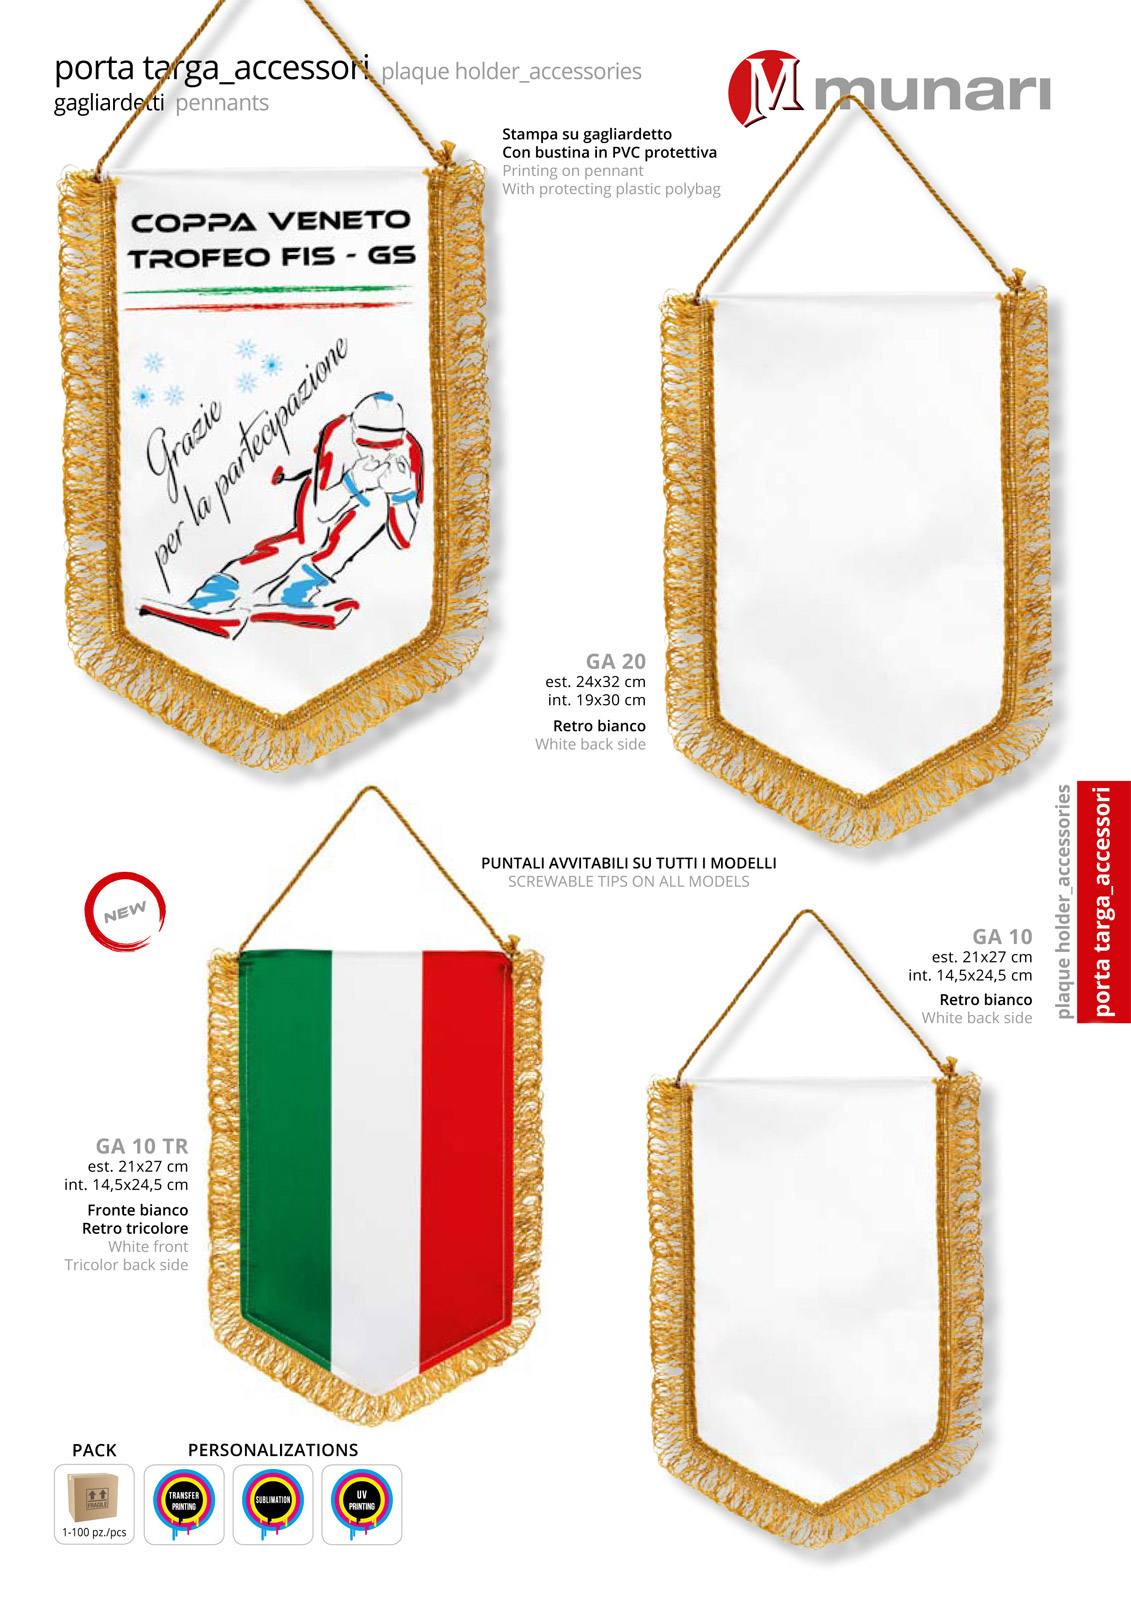 Pennants for sublimation or transfer printing GA 10 GA 20